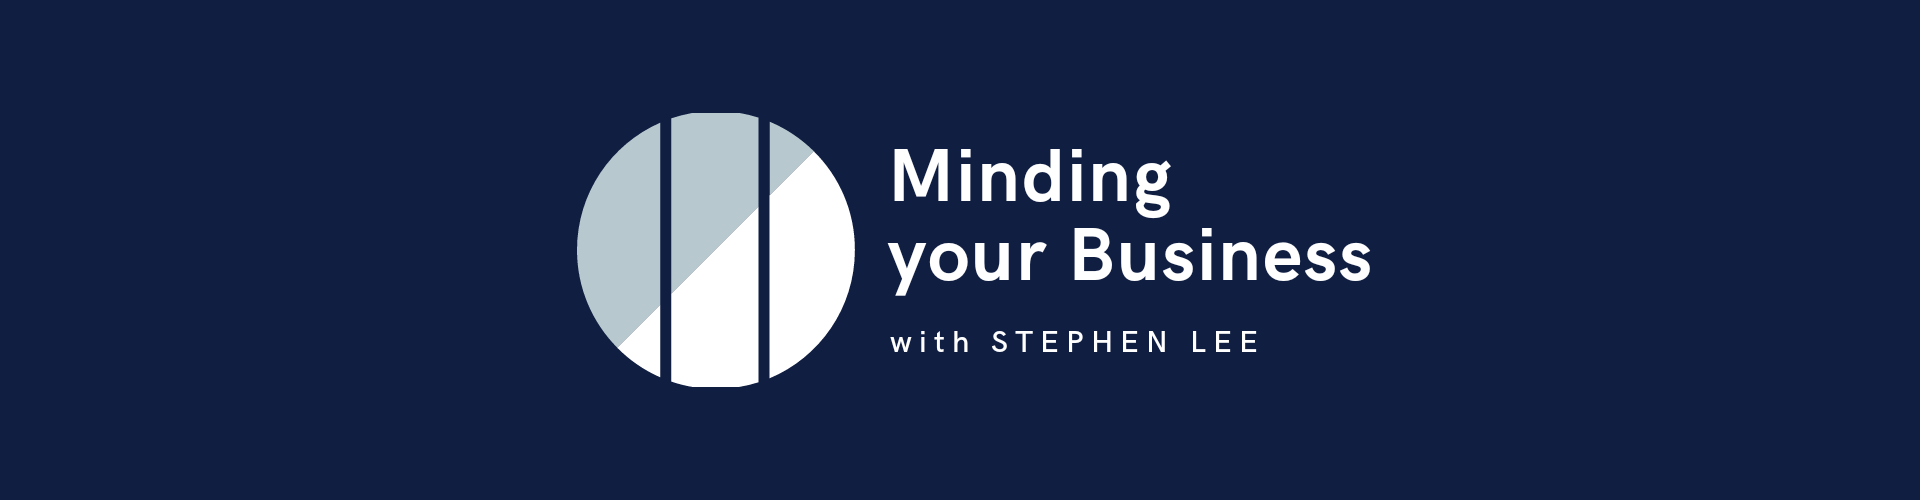 Minding Your Business With Stephen Lee